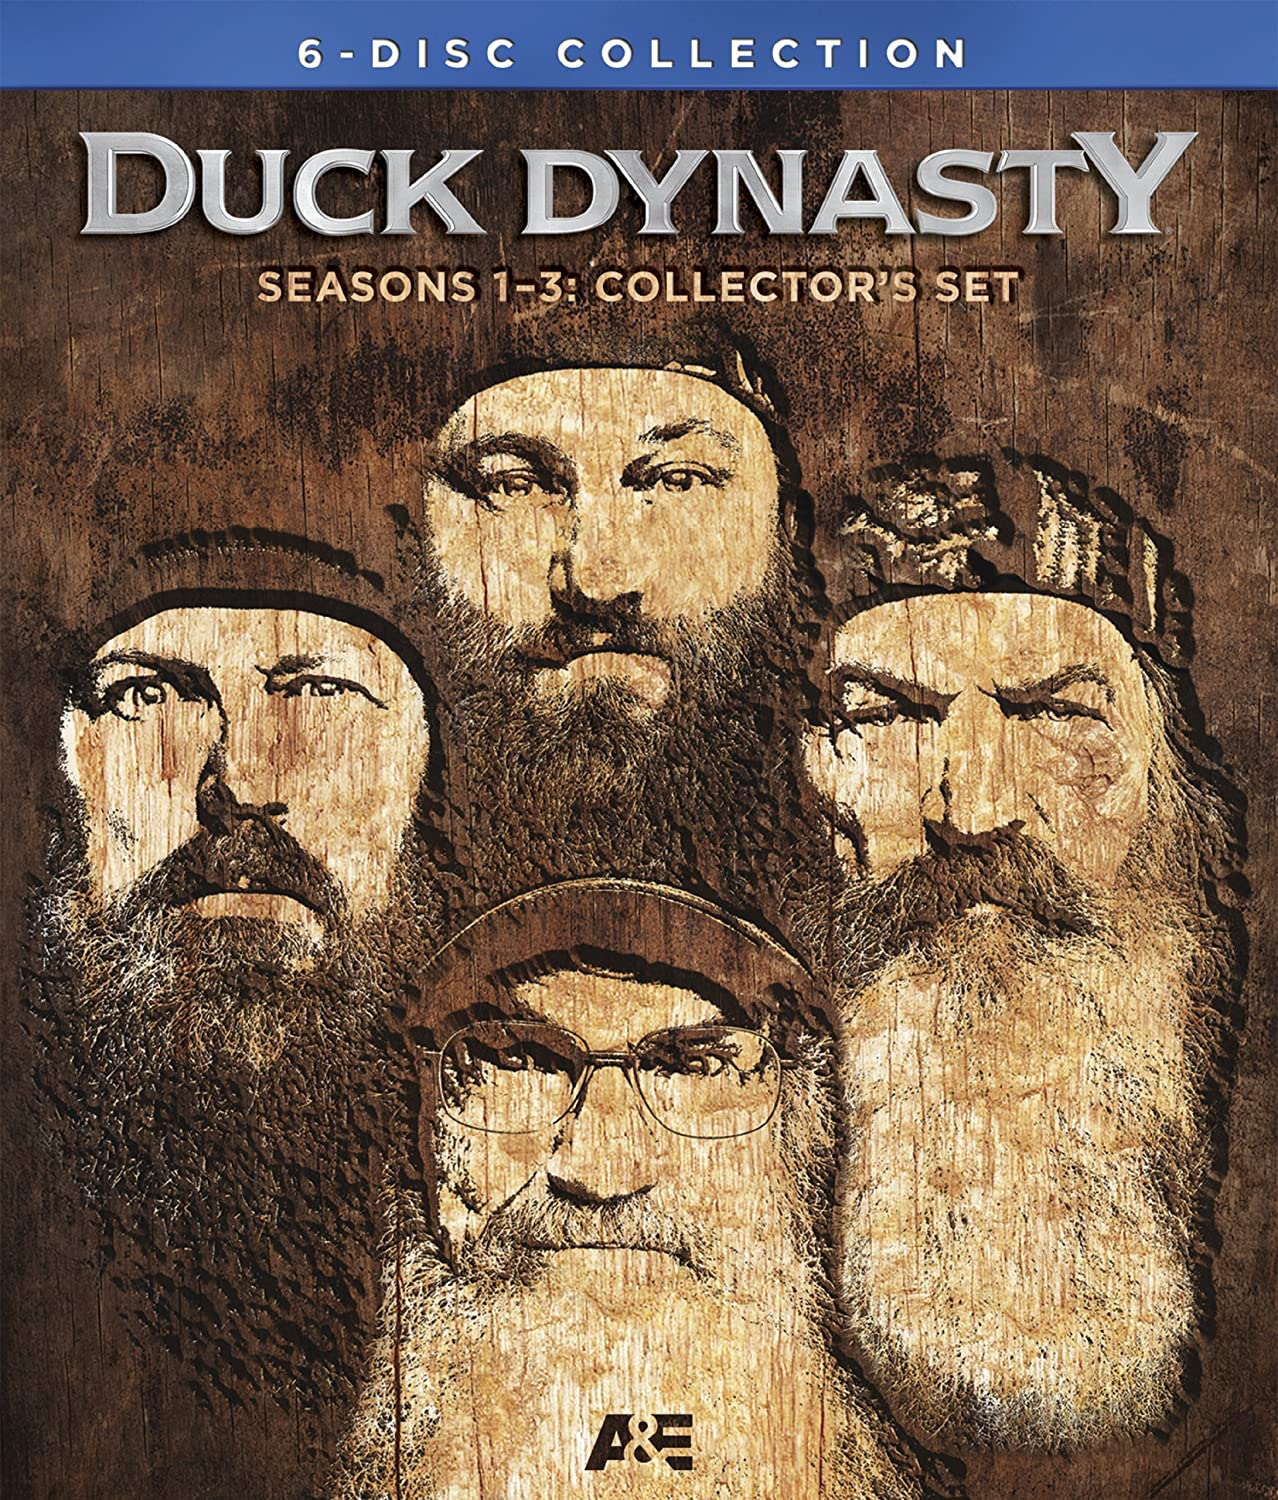 Amazon.com: Duck Dynasty: Seasons 1-3 Collectors Set [Blu-ray ...